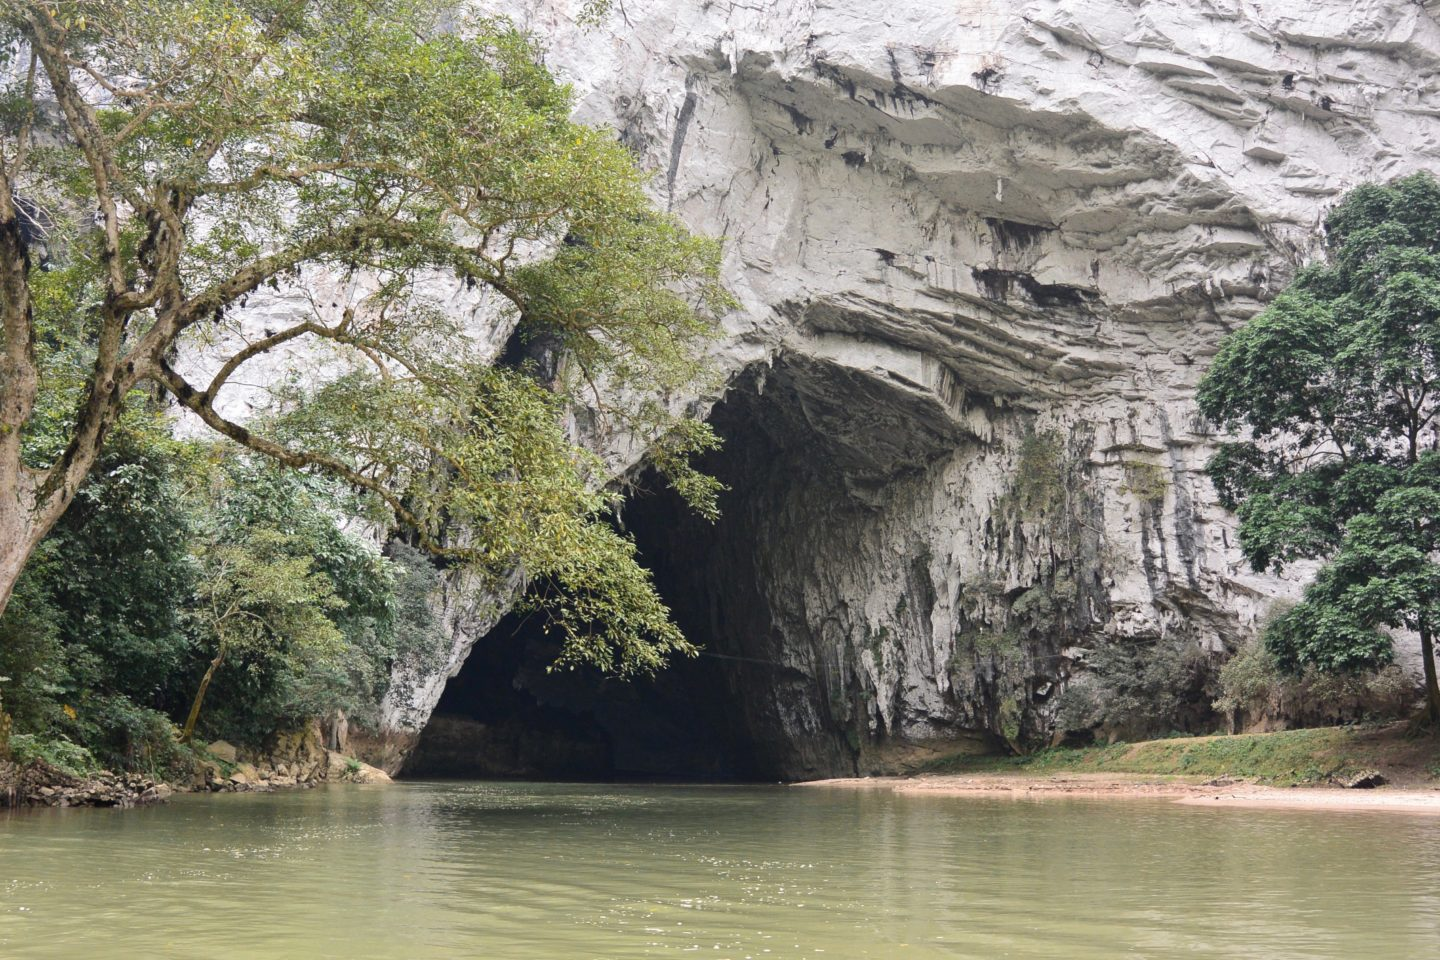 arriving at the Puong Cave by boat